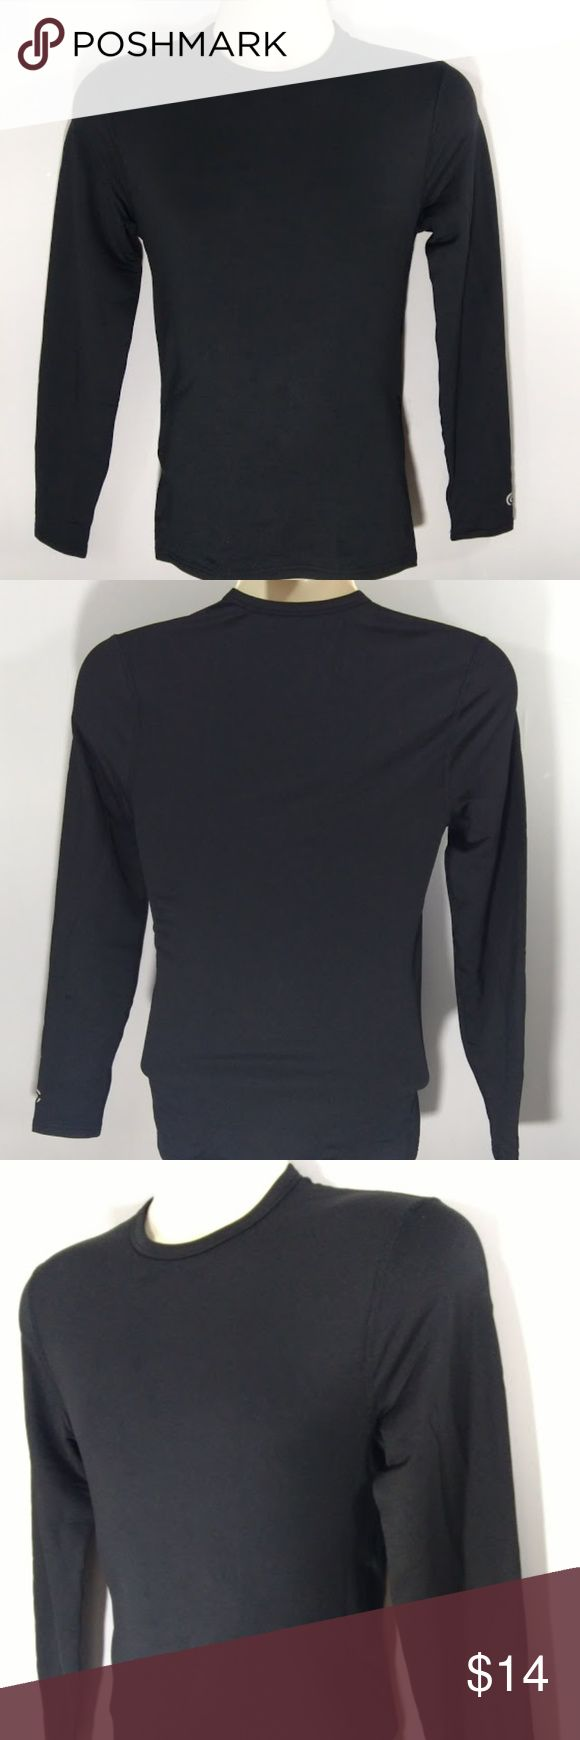 NWOT Size Small Long Sleeve Black Top (blq9) Champion Performance Base Layer Men's Size Small Long Sleeve Black. Stay warm in the cold  Size: Small Worn: Never Condition: Pristine Stains:x Holes:x Rips:x Fading:  x  Color may vary slightly from photos. Champion Underwear & Socks Undershirts